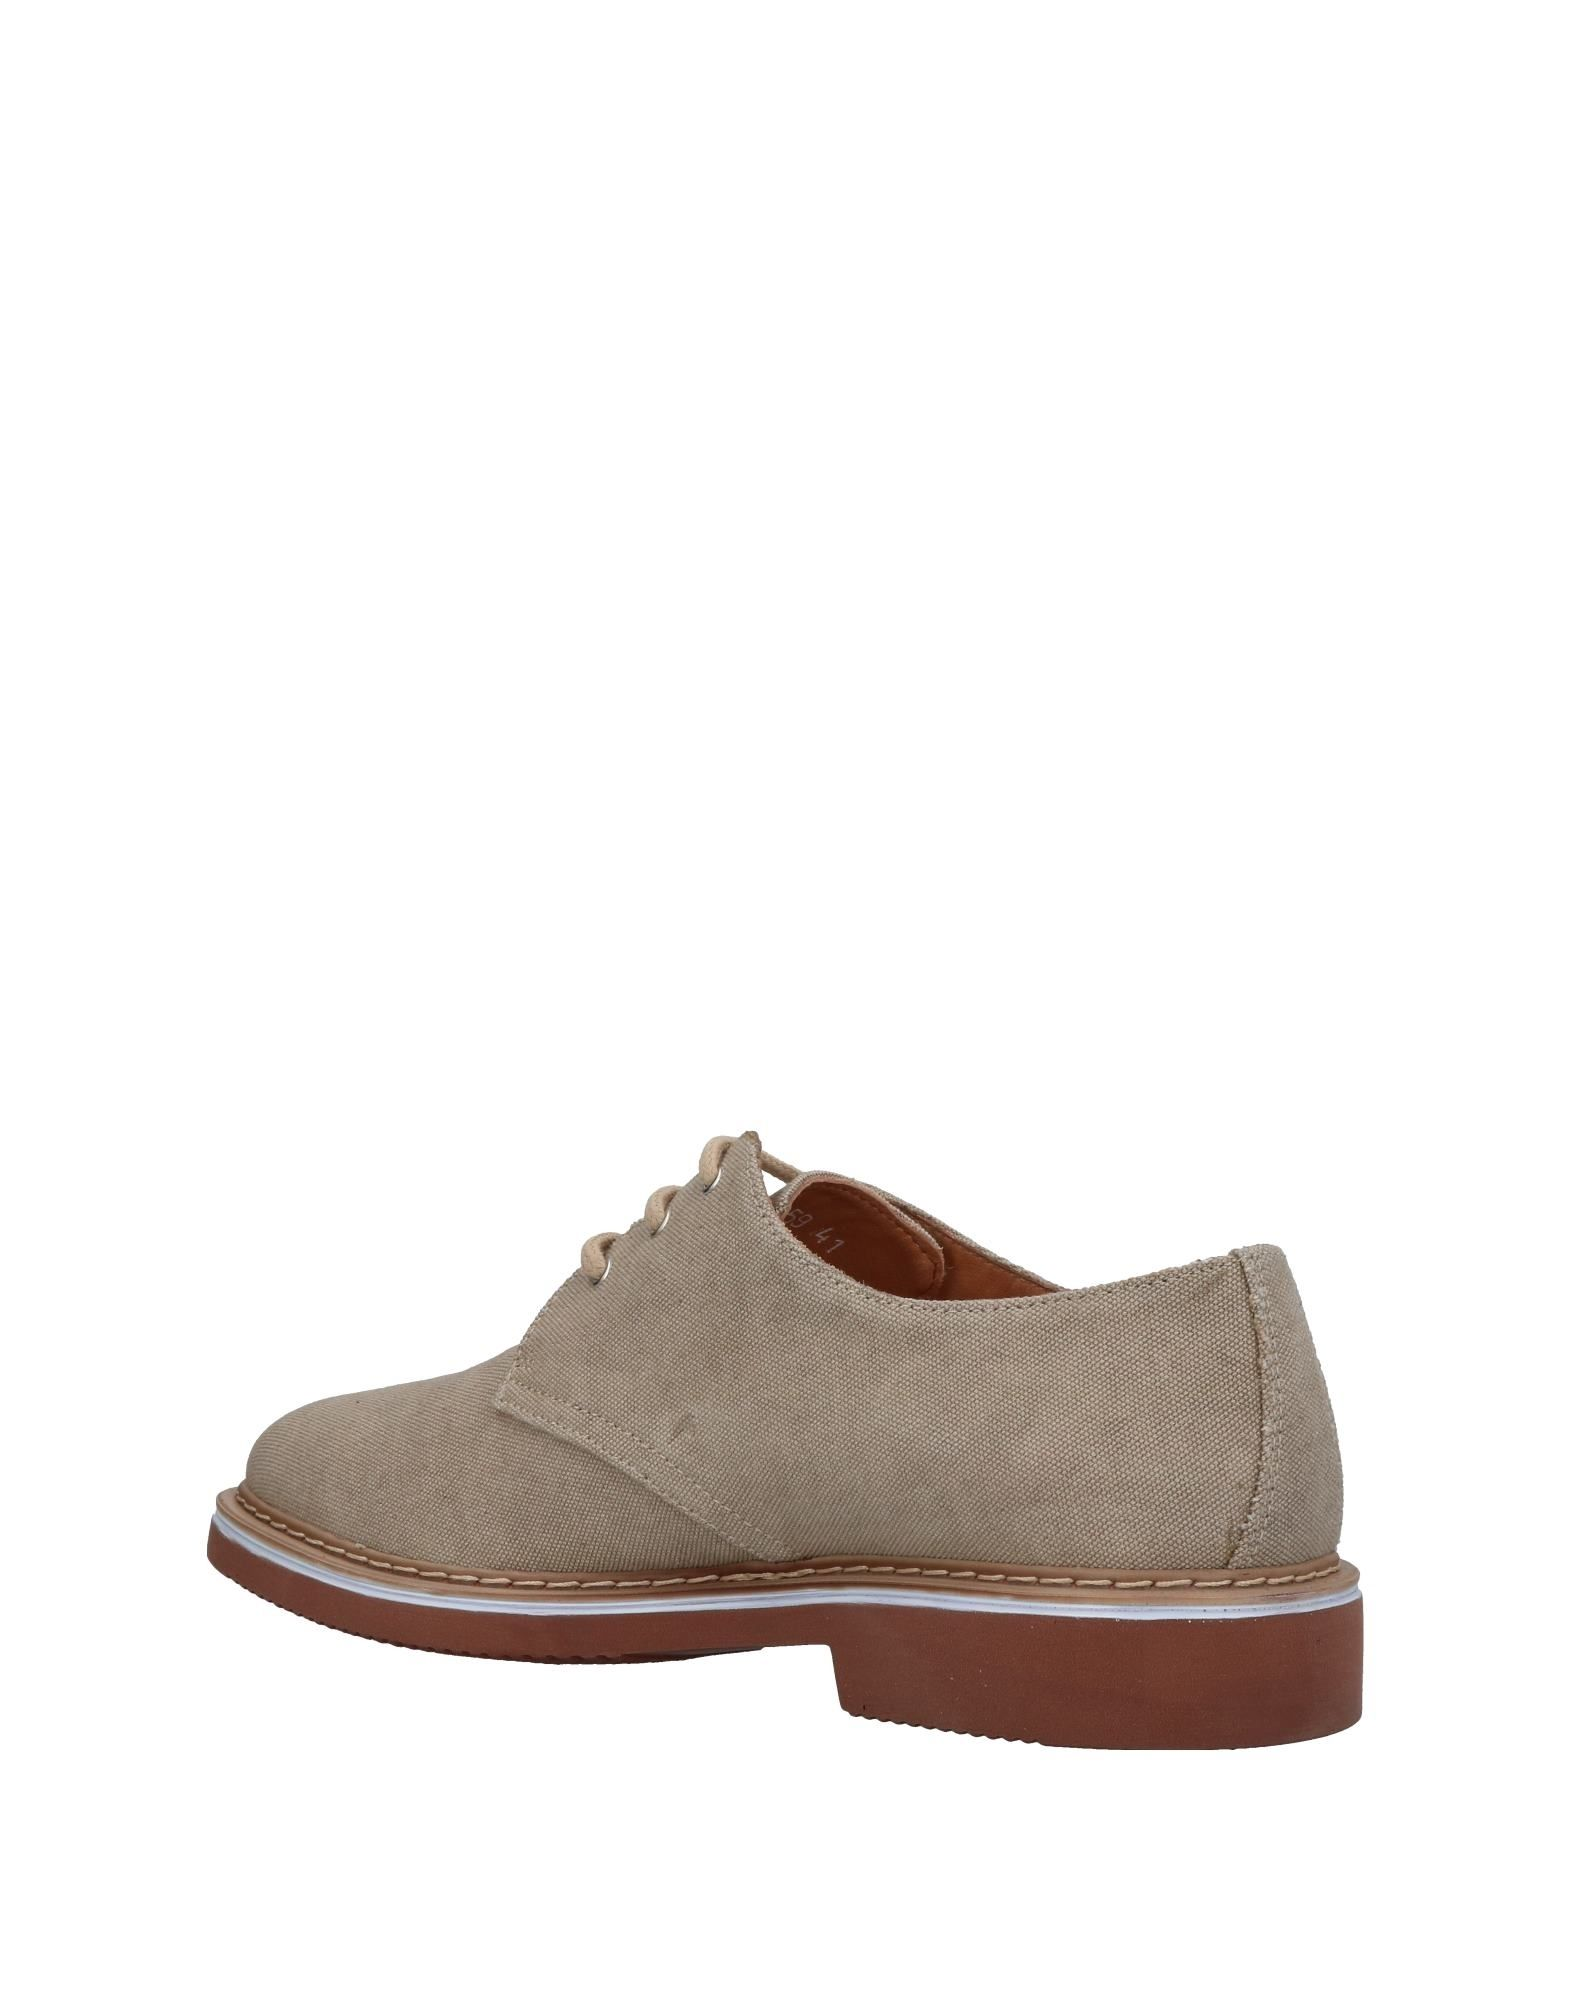 Chaussures À Lacets Anderson Homme - Chaussures À Lacets Anderson sur